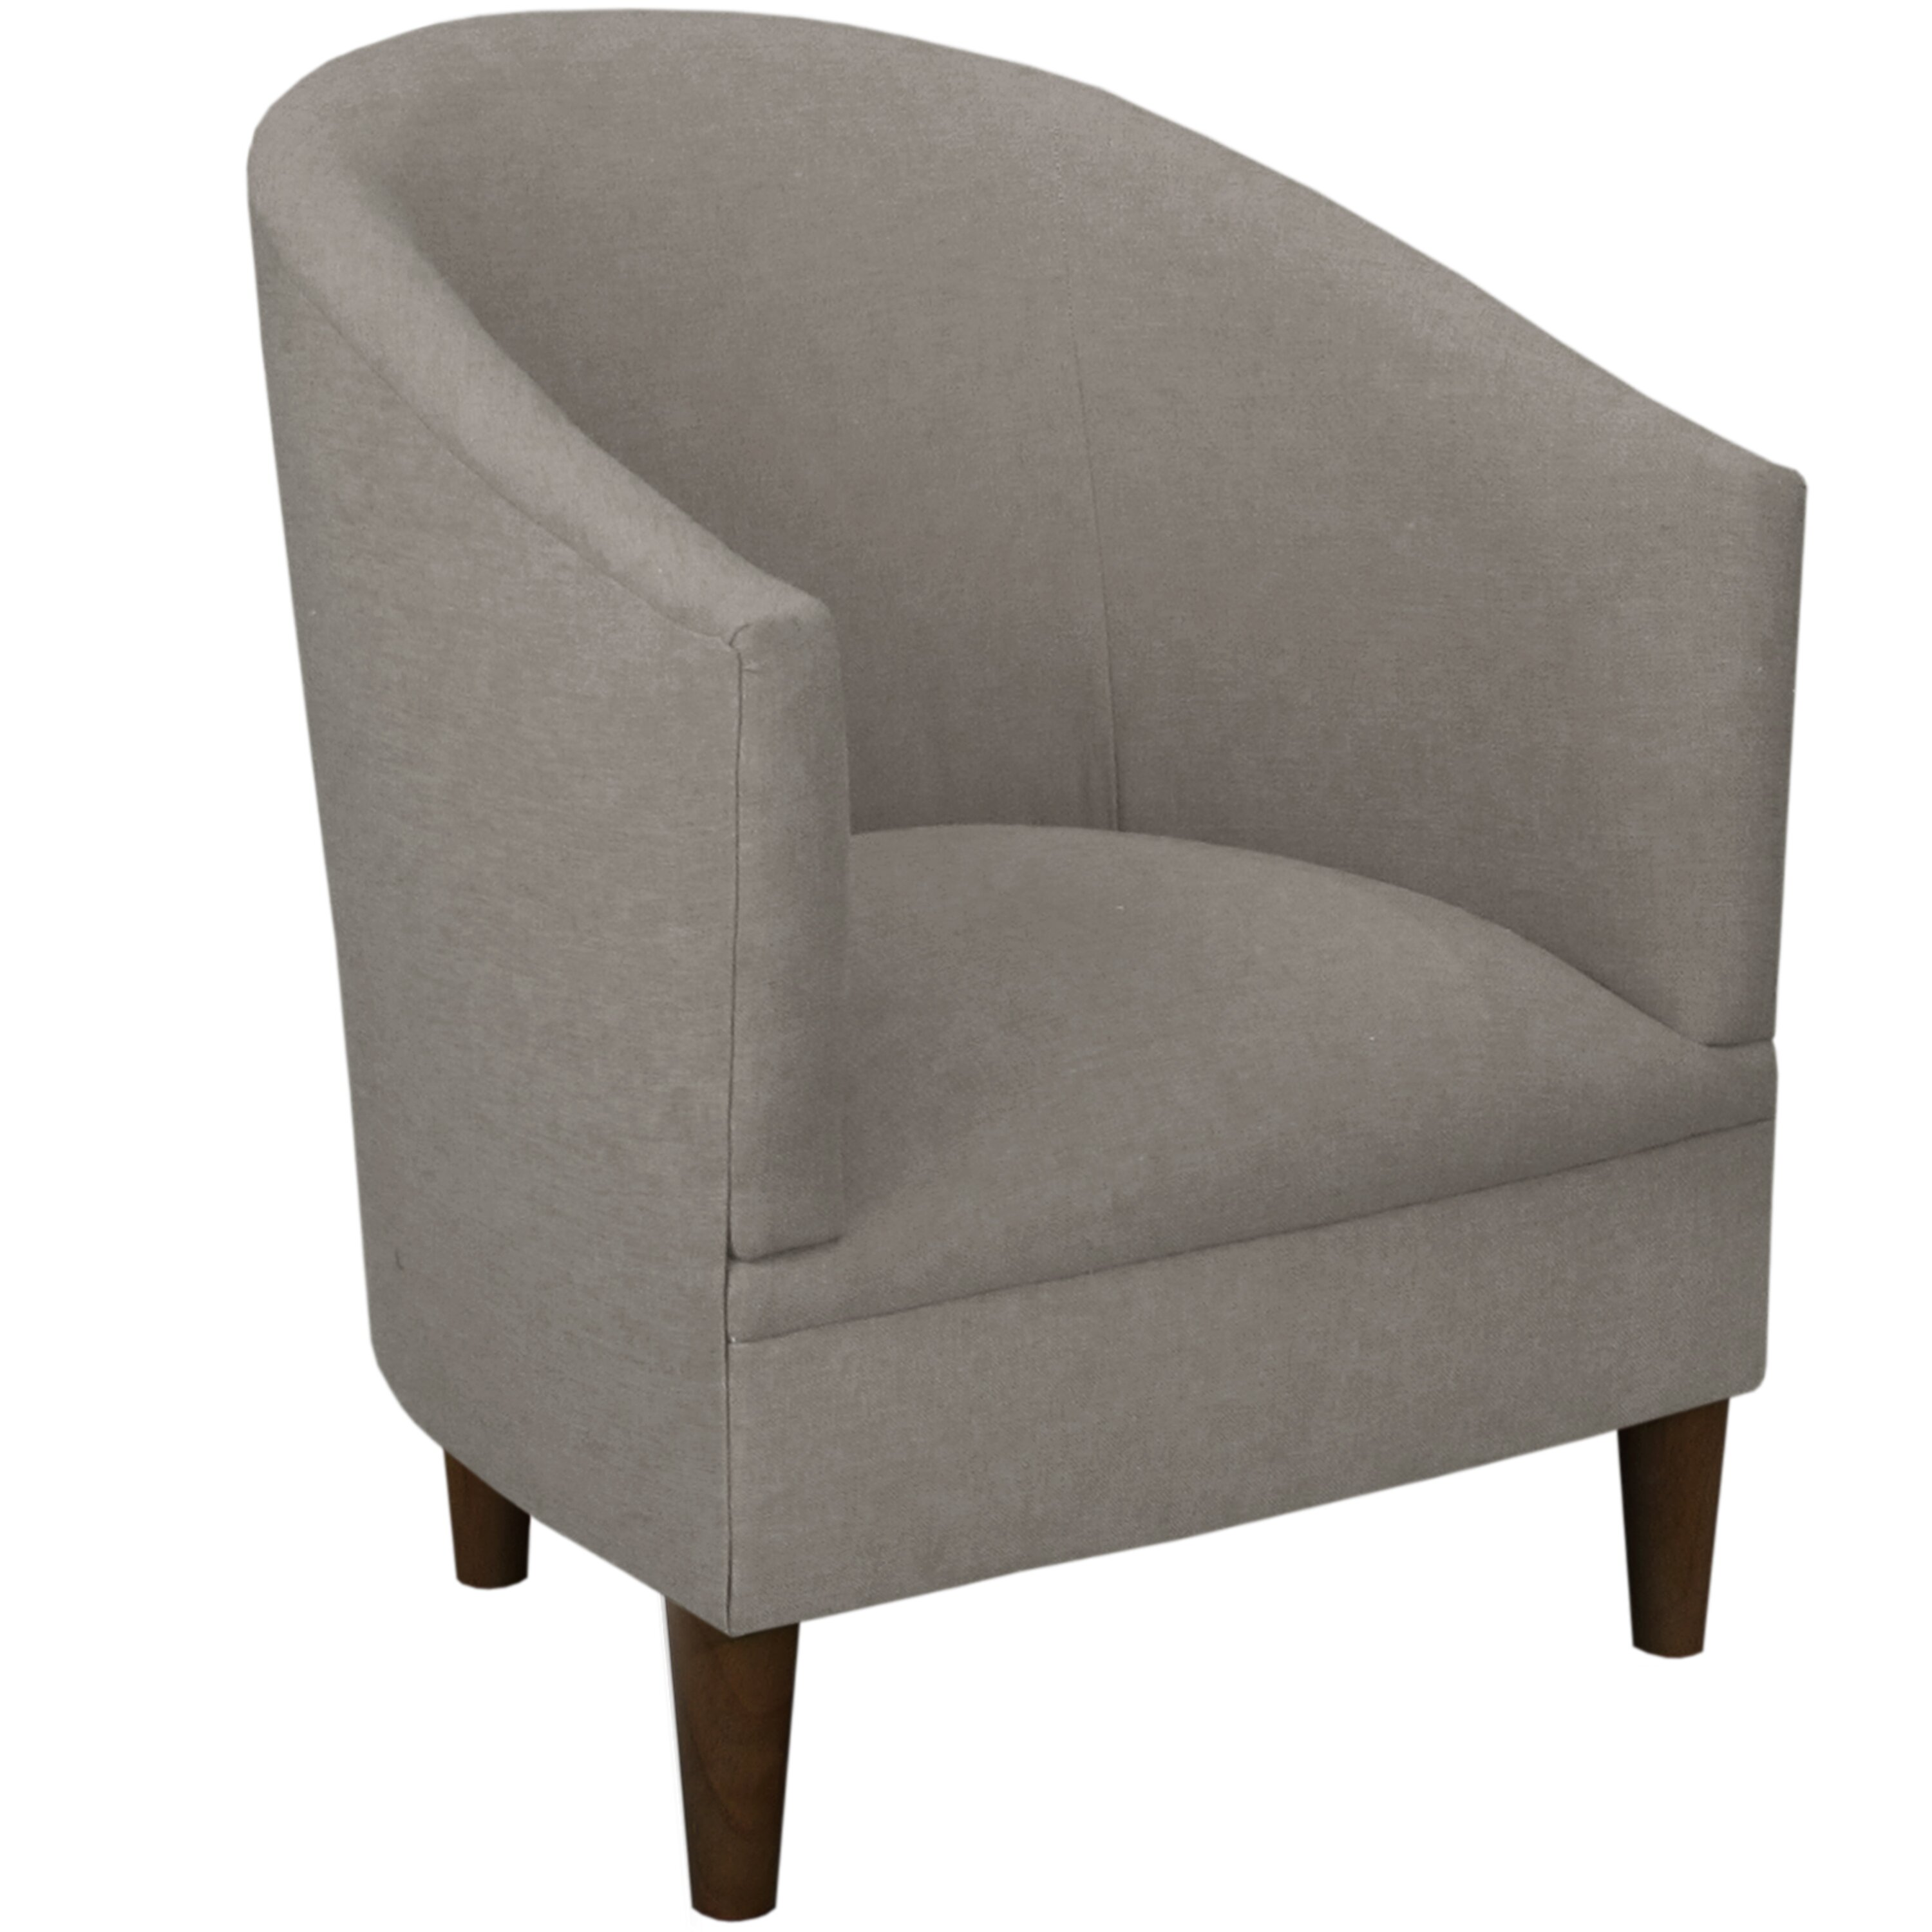 Skyline furniture linen arm chair reviews wayfair for I furniture reviews